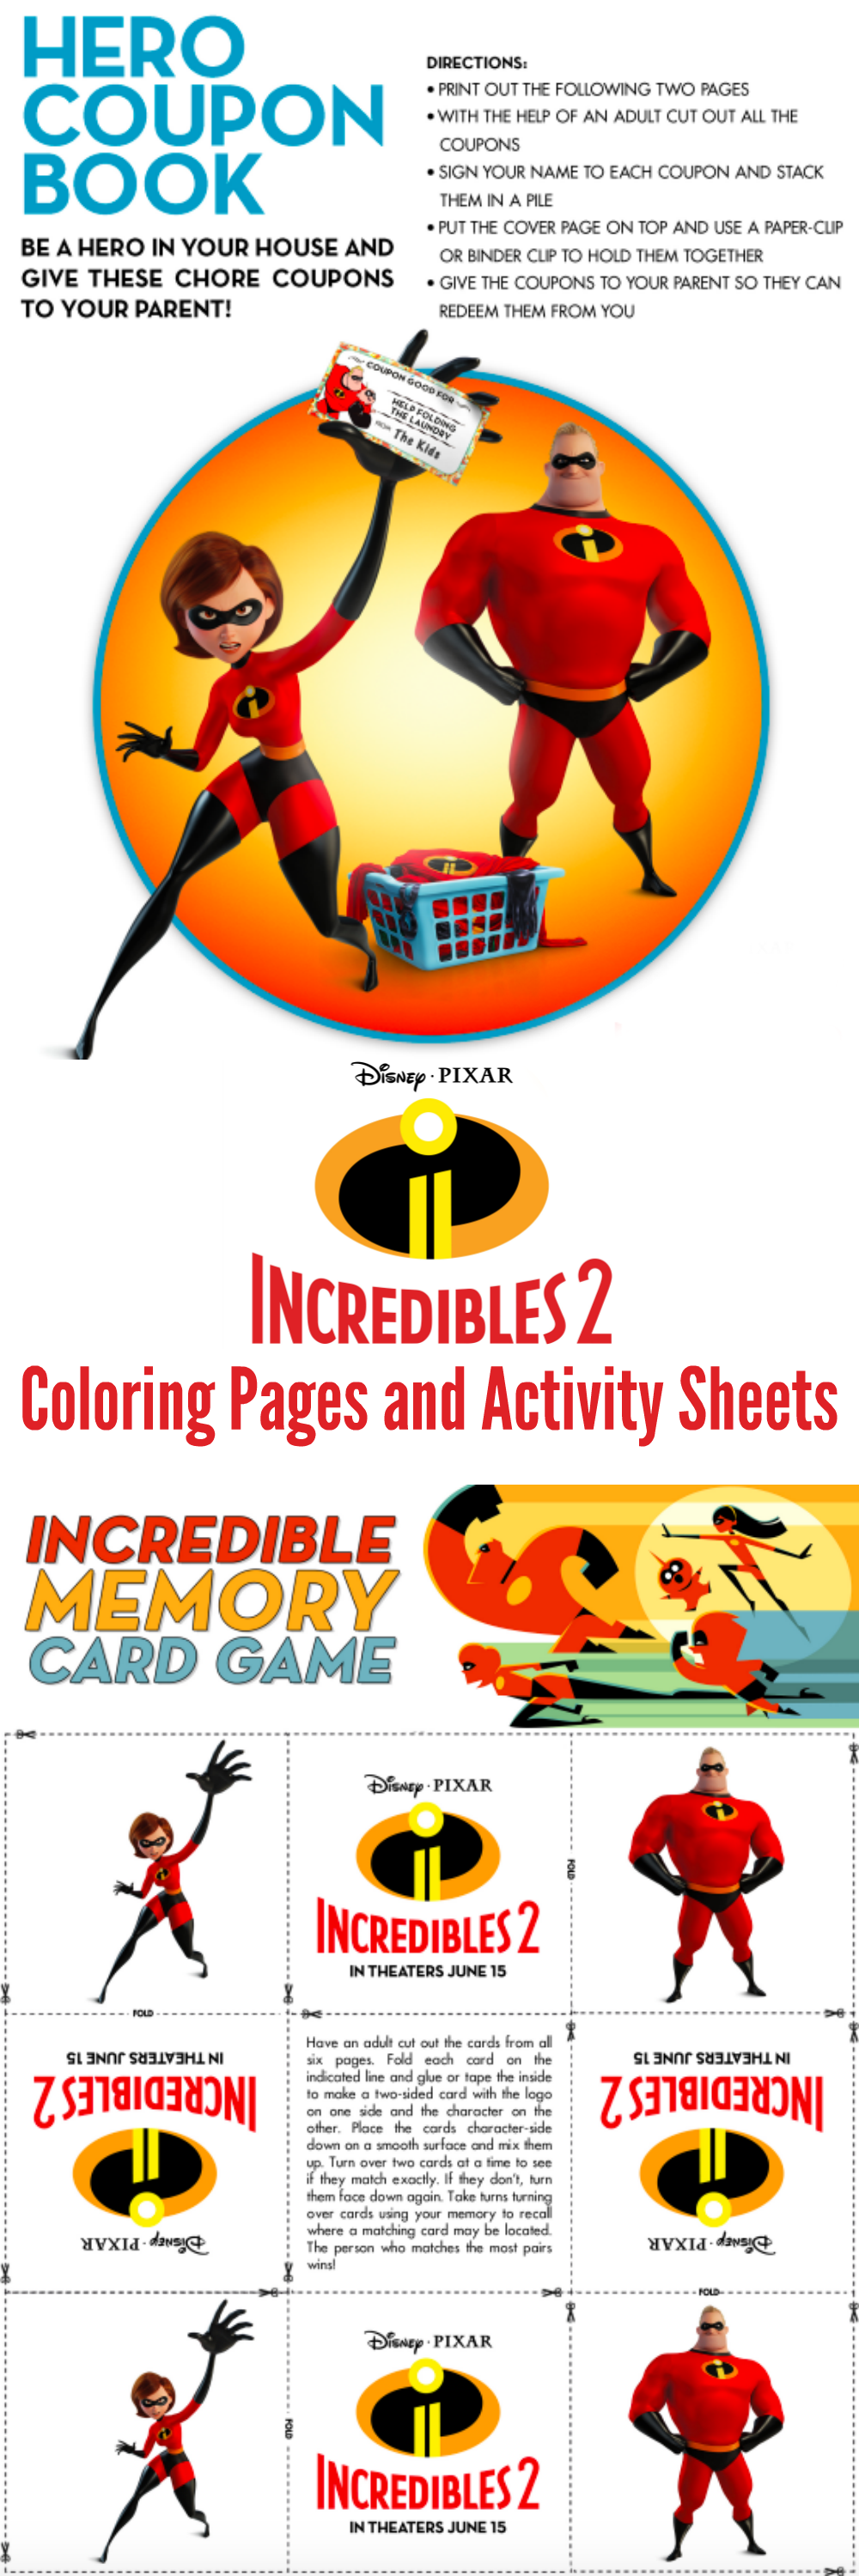 Find Your Supersuit And Get Ready For Some Incredibles 2 Fun When You Download These Incredibles 2 Coloring P Disney Activities The Incredibles Activity Sheets